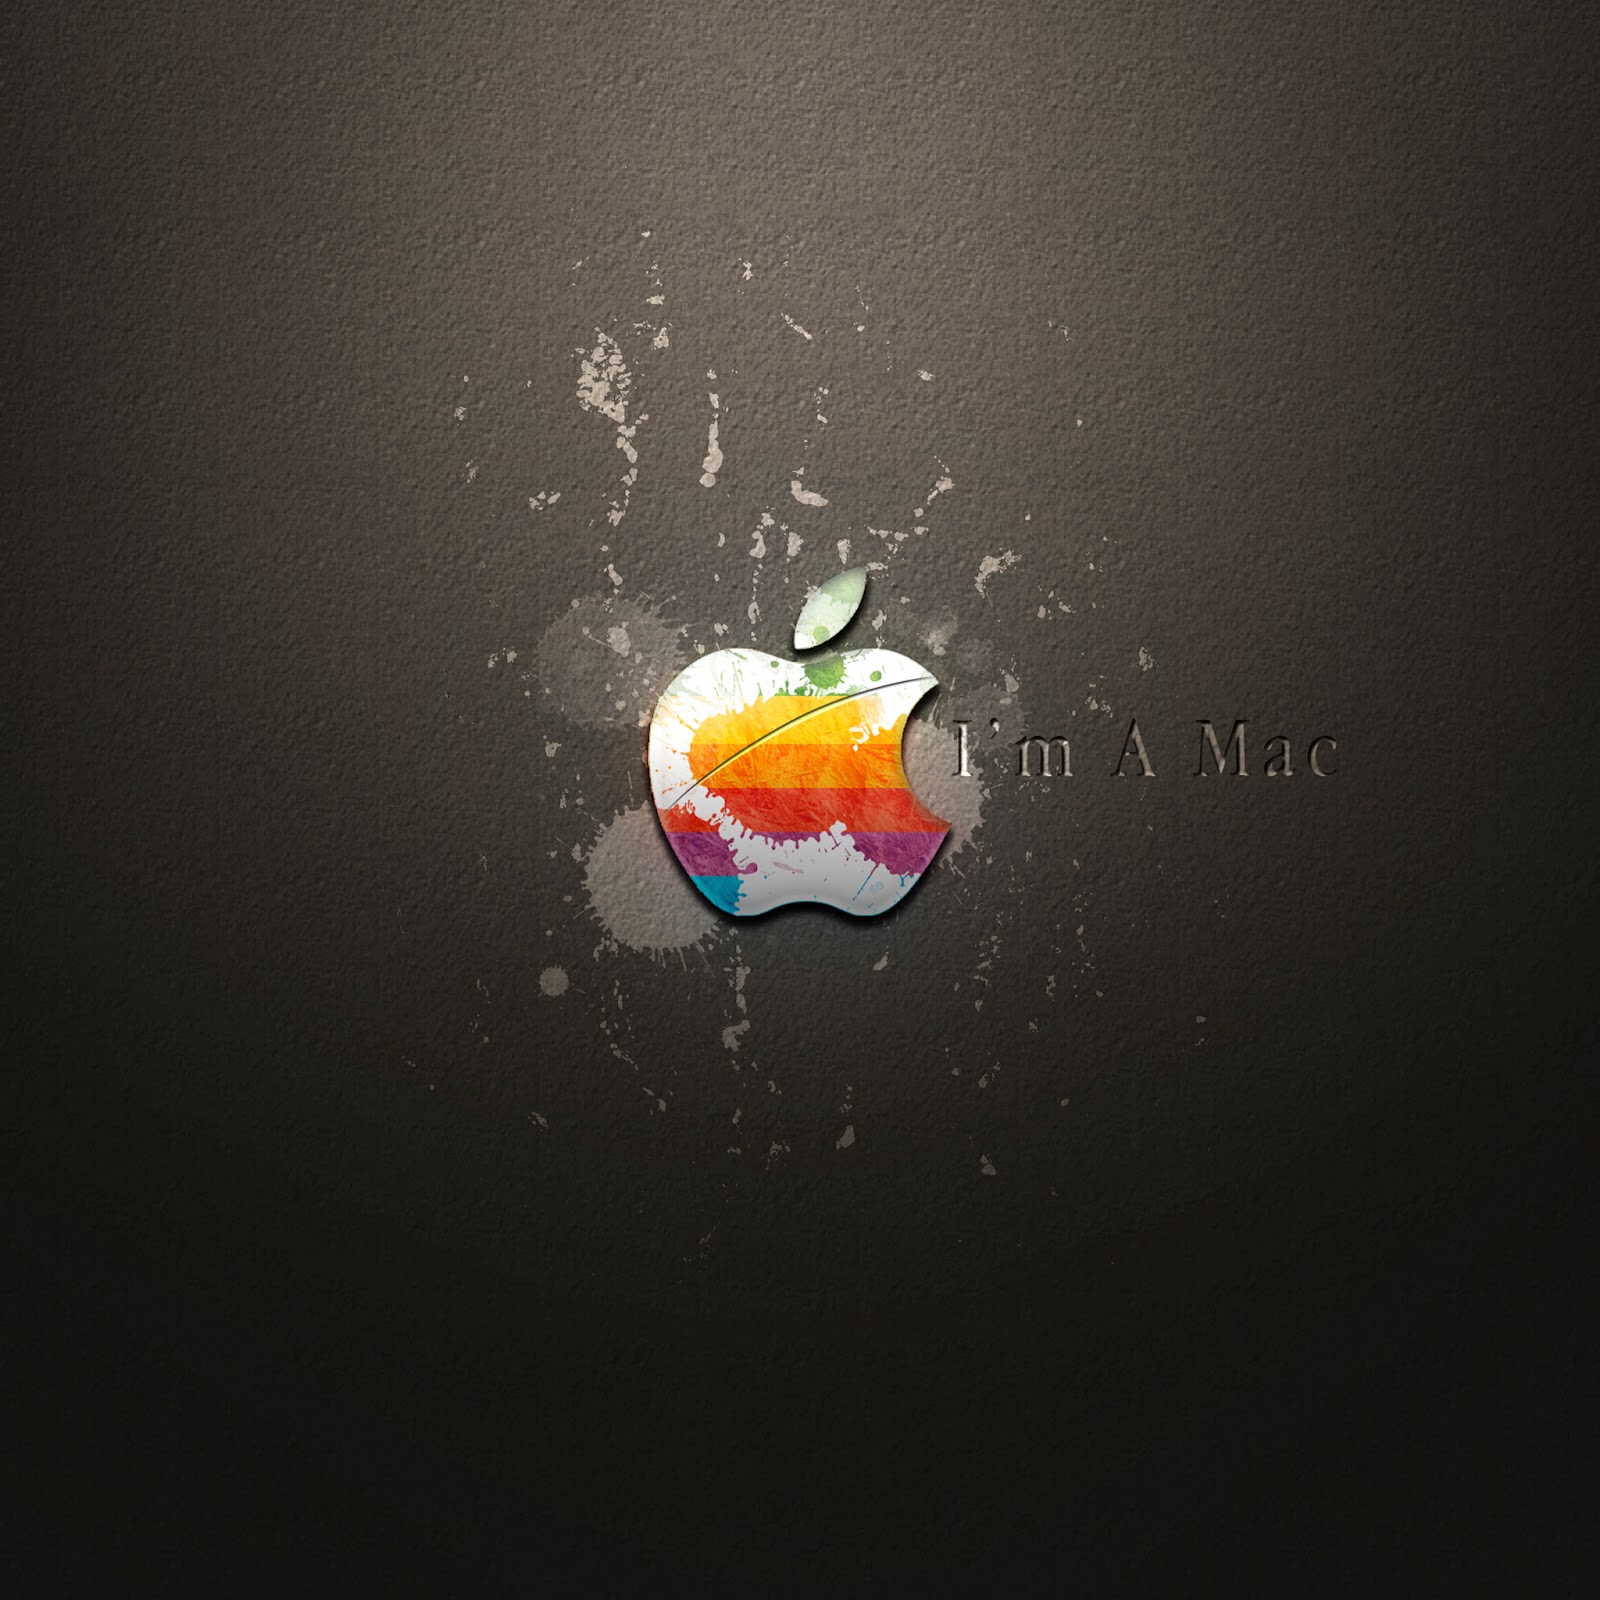 new ipad wallpaper,2048×2048,ipad 3 wallpapers hd - my lovely ipad